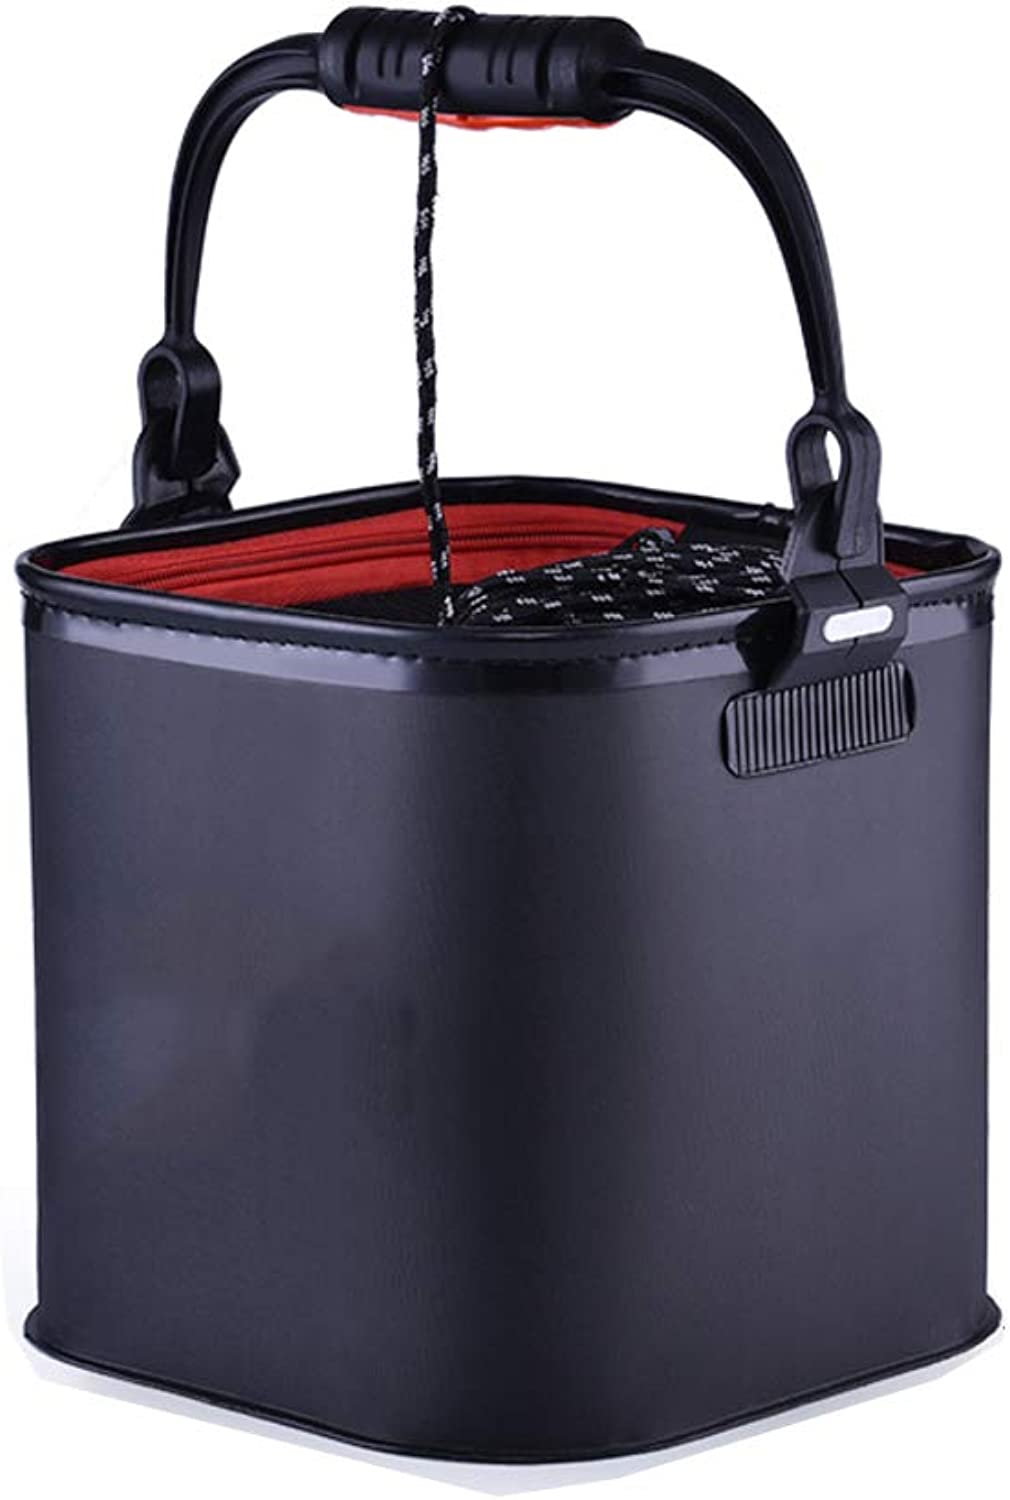 Large Capacity Collapsible Bucket,Portable Folding Water Container Space Saving Suitable for Outdoor Camping,Hiking & HomeD 7L